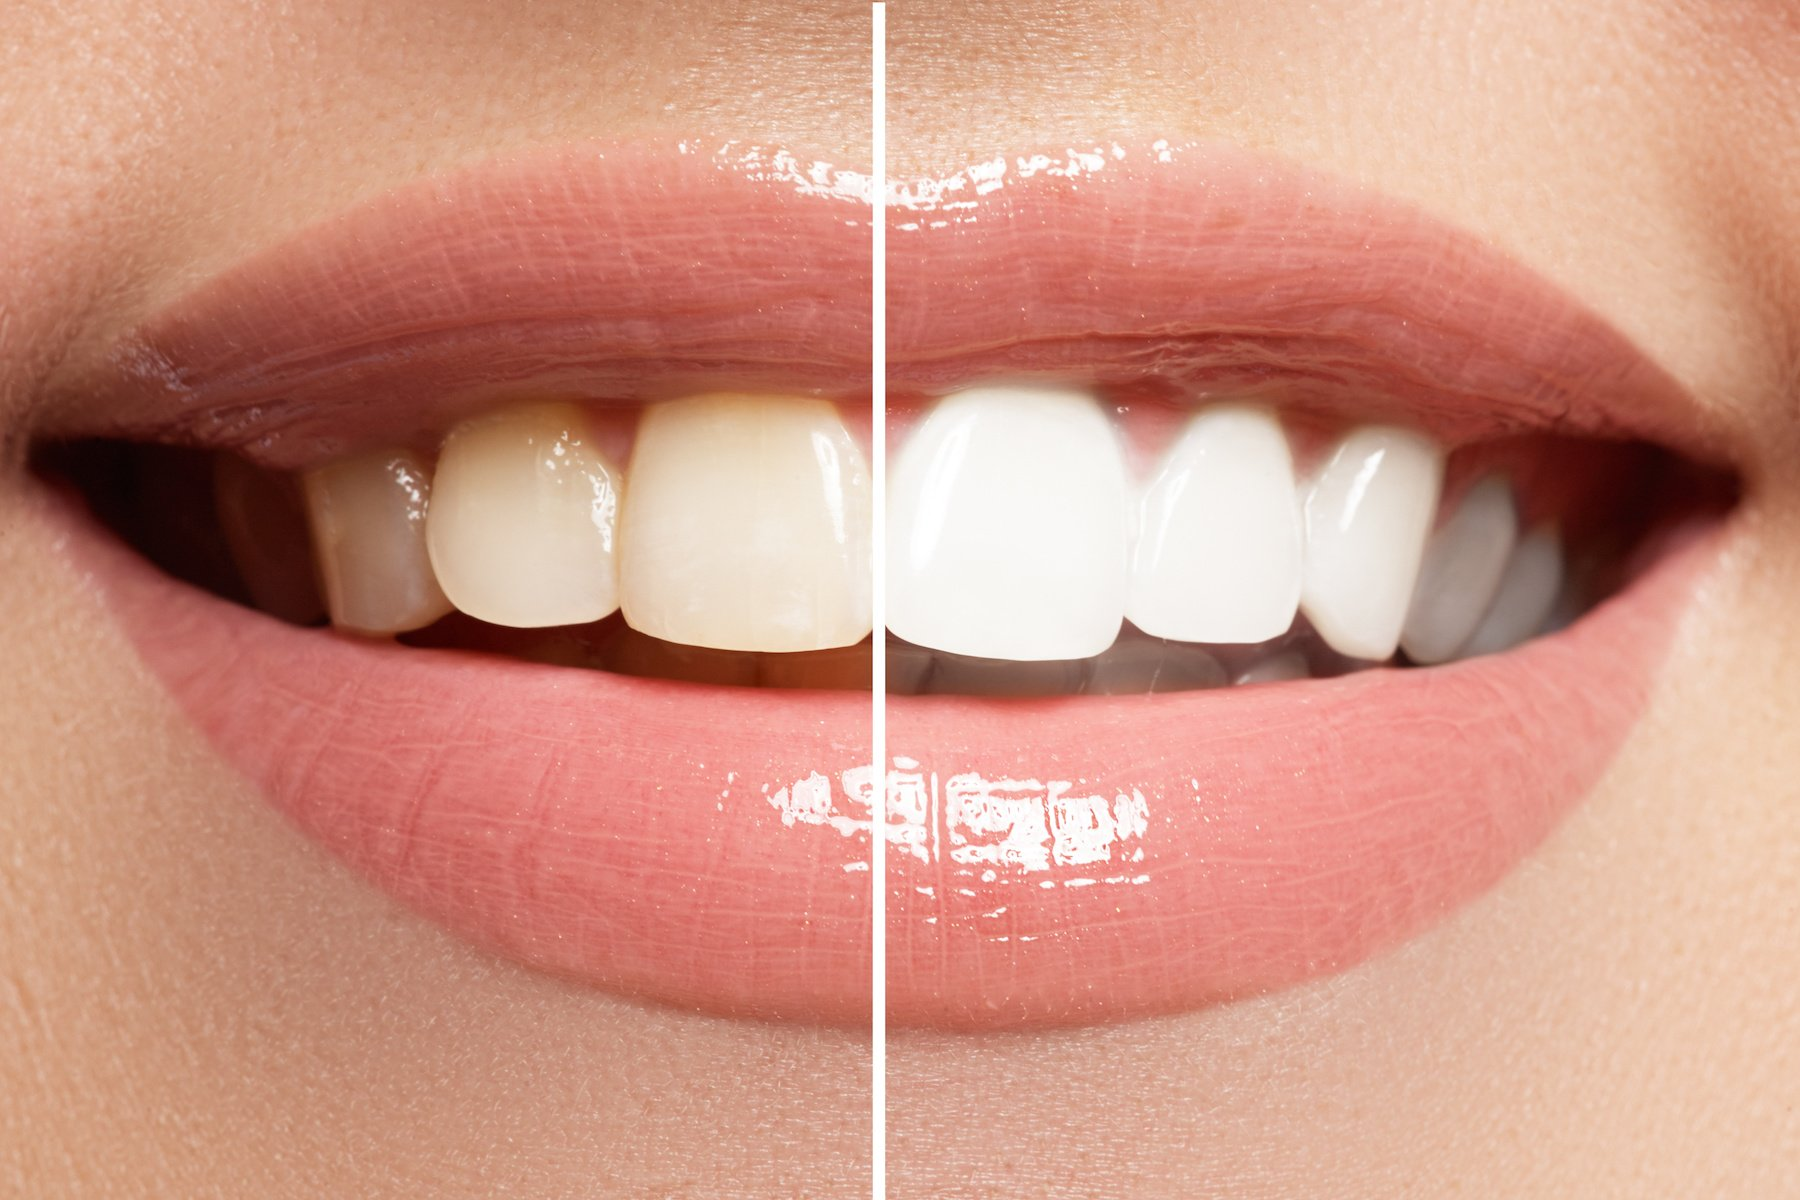 cosmetic dentistry whitening teeth dentist clinic tooth crown veneers kelowna dr sandy dr peter mitchell